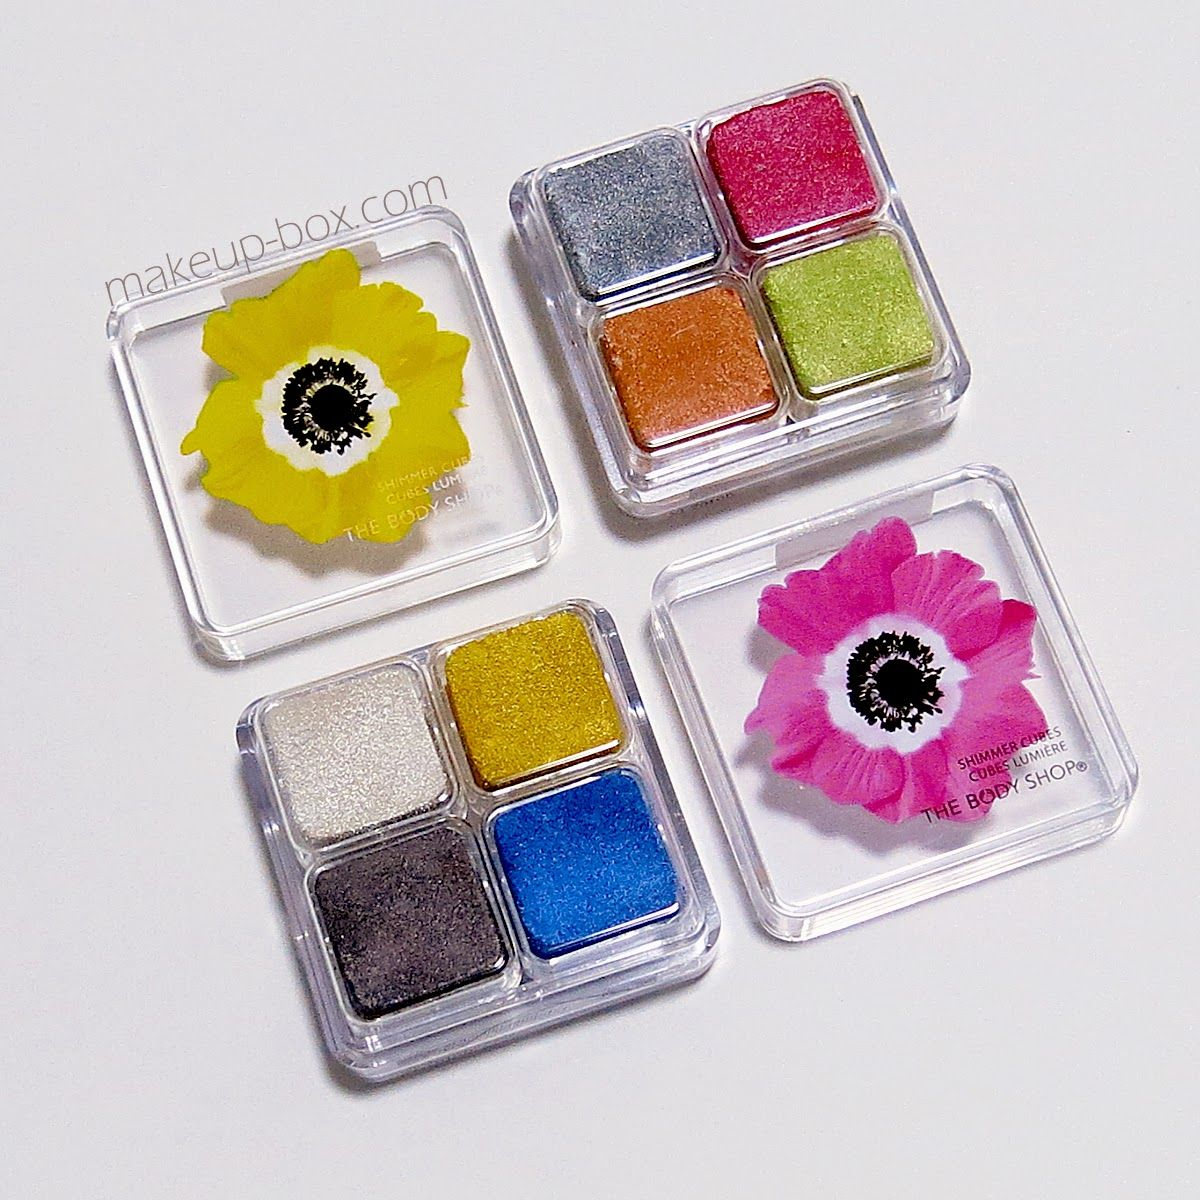 The Makeup Box: Poppy Fever: The Body Shop Spring 2015 Collection ... CANNOT wait to get my hands on these  #thebodyshop